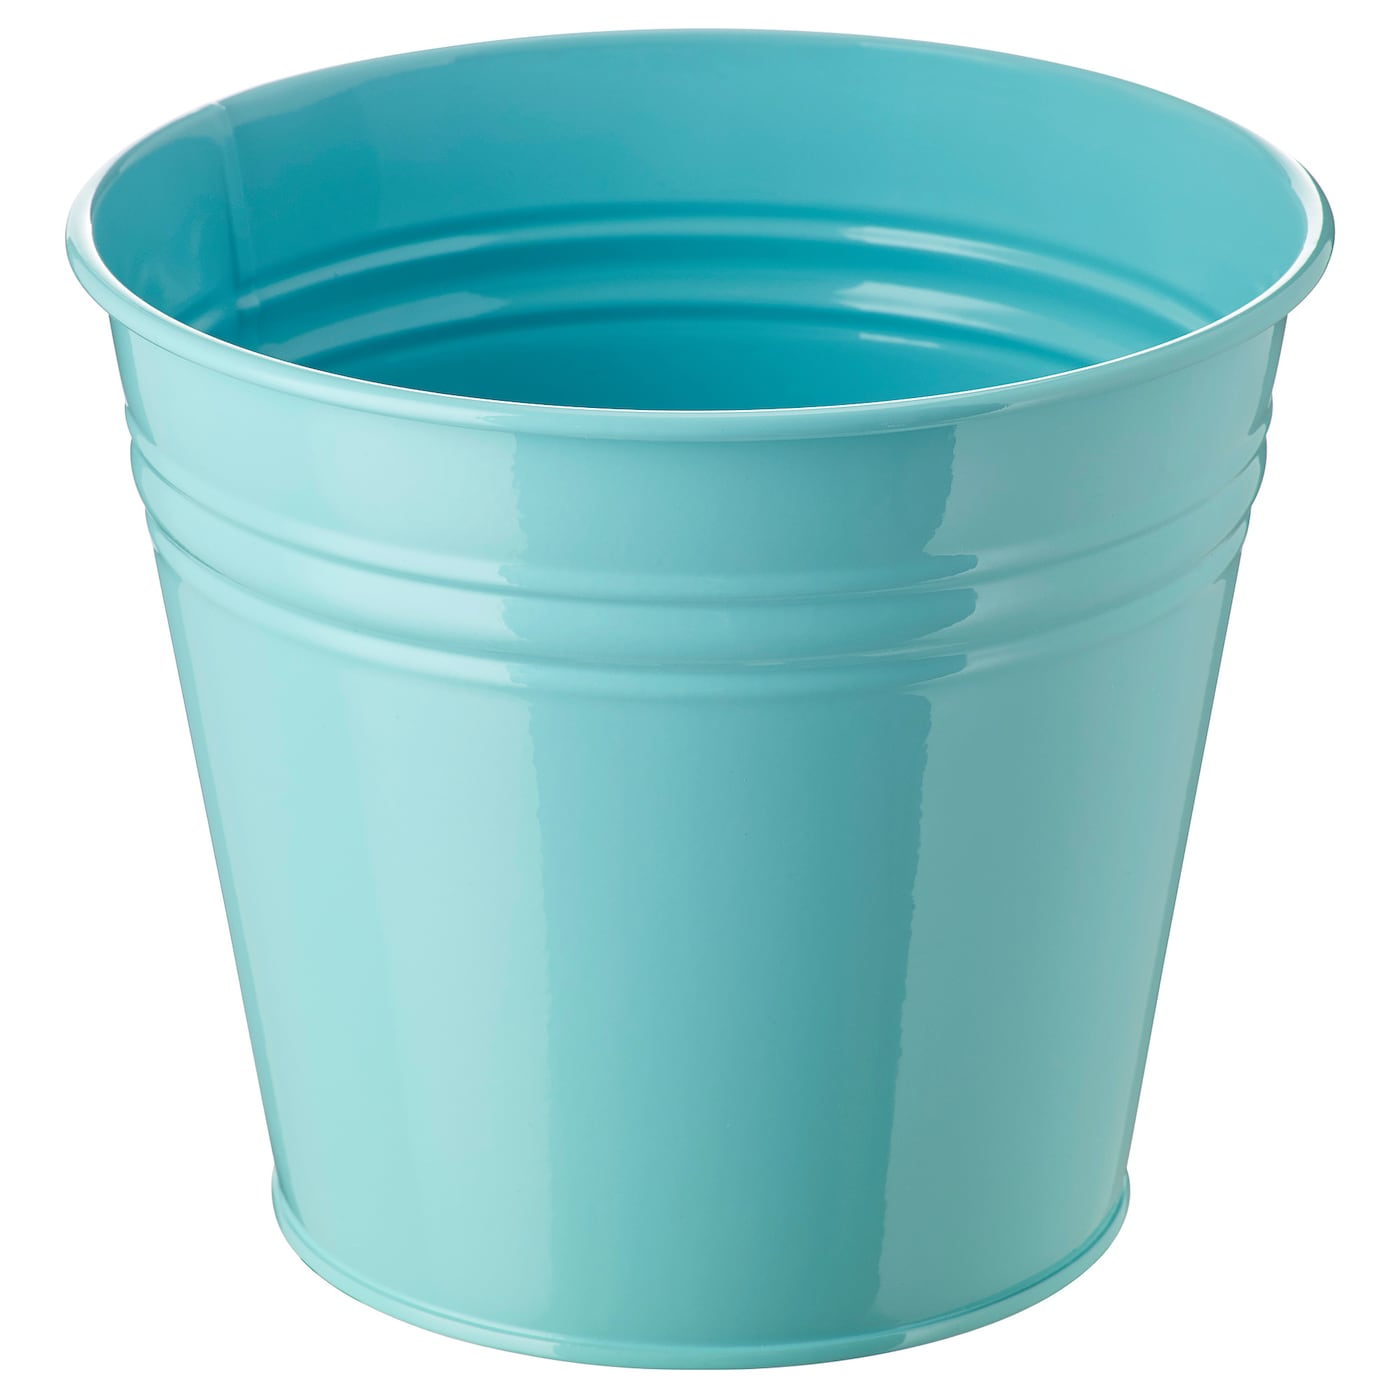 Socker cache pot int rieur ext rieur turquoise 15 cm ikea for Cache pot exterieur